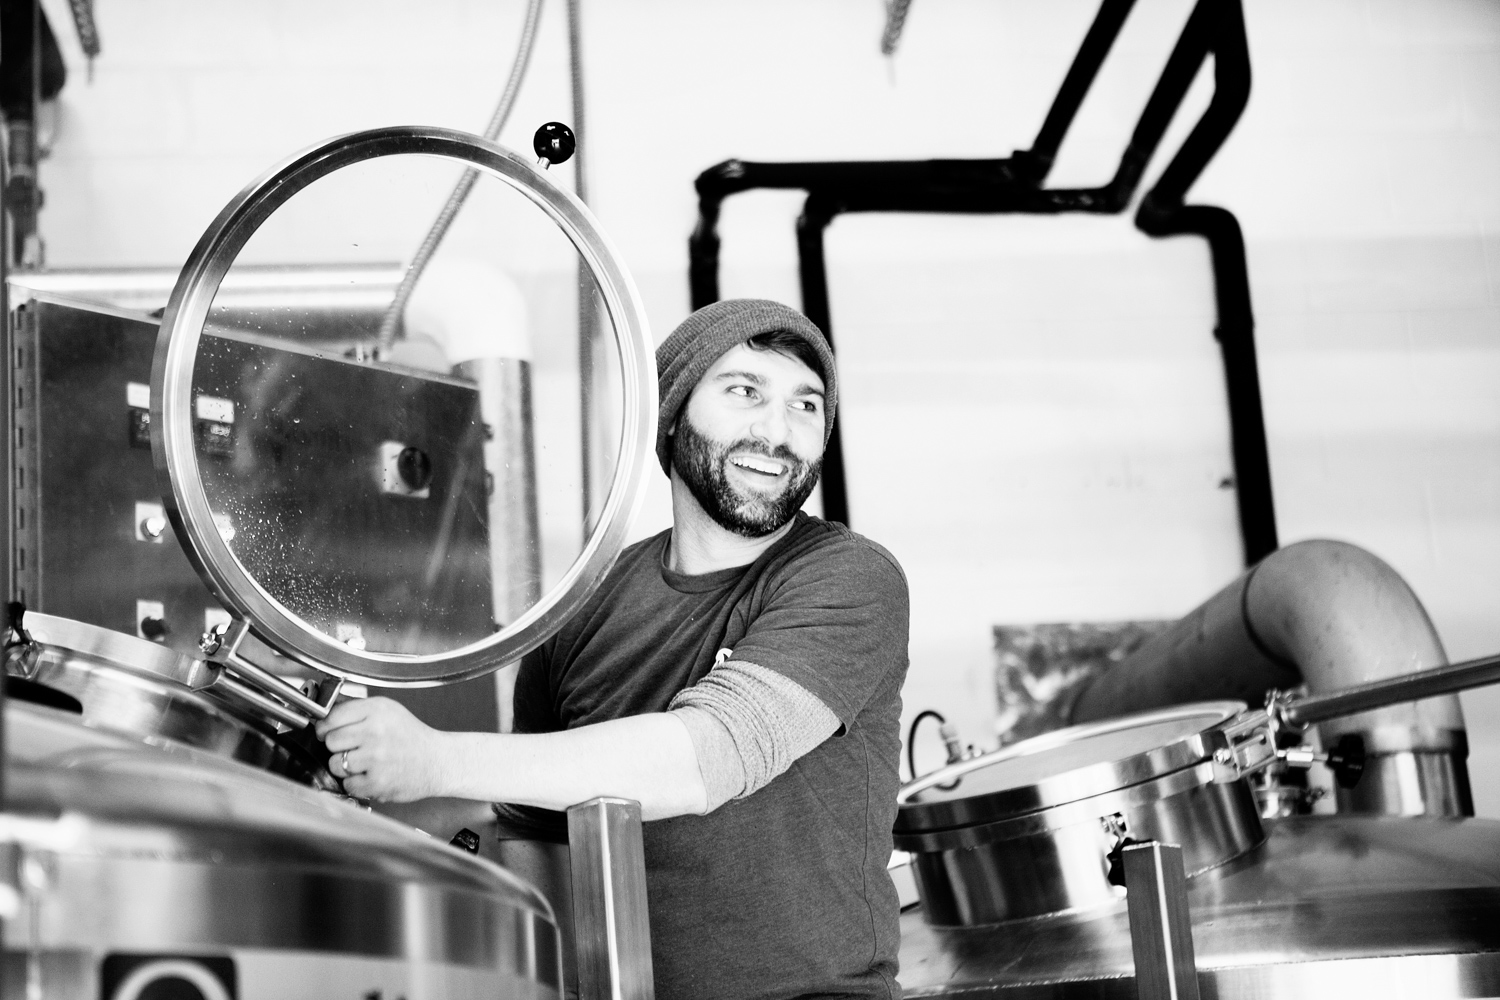 Ryan Coker, owner and head brewer of Revelry Brewing